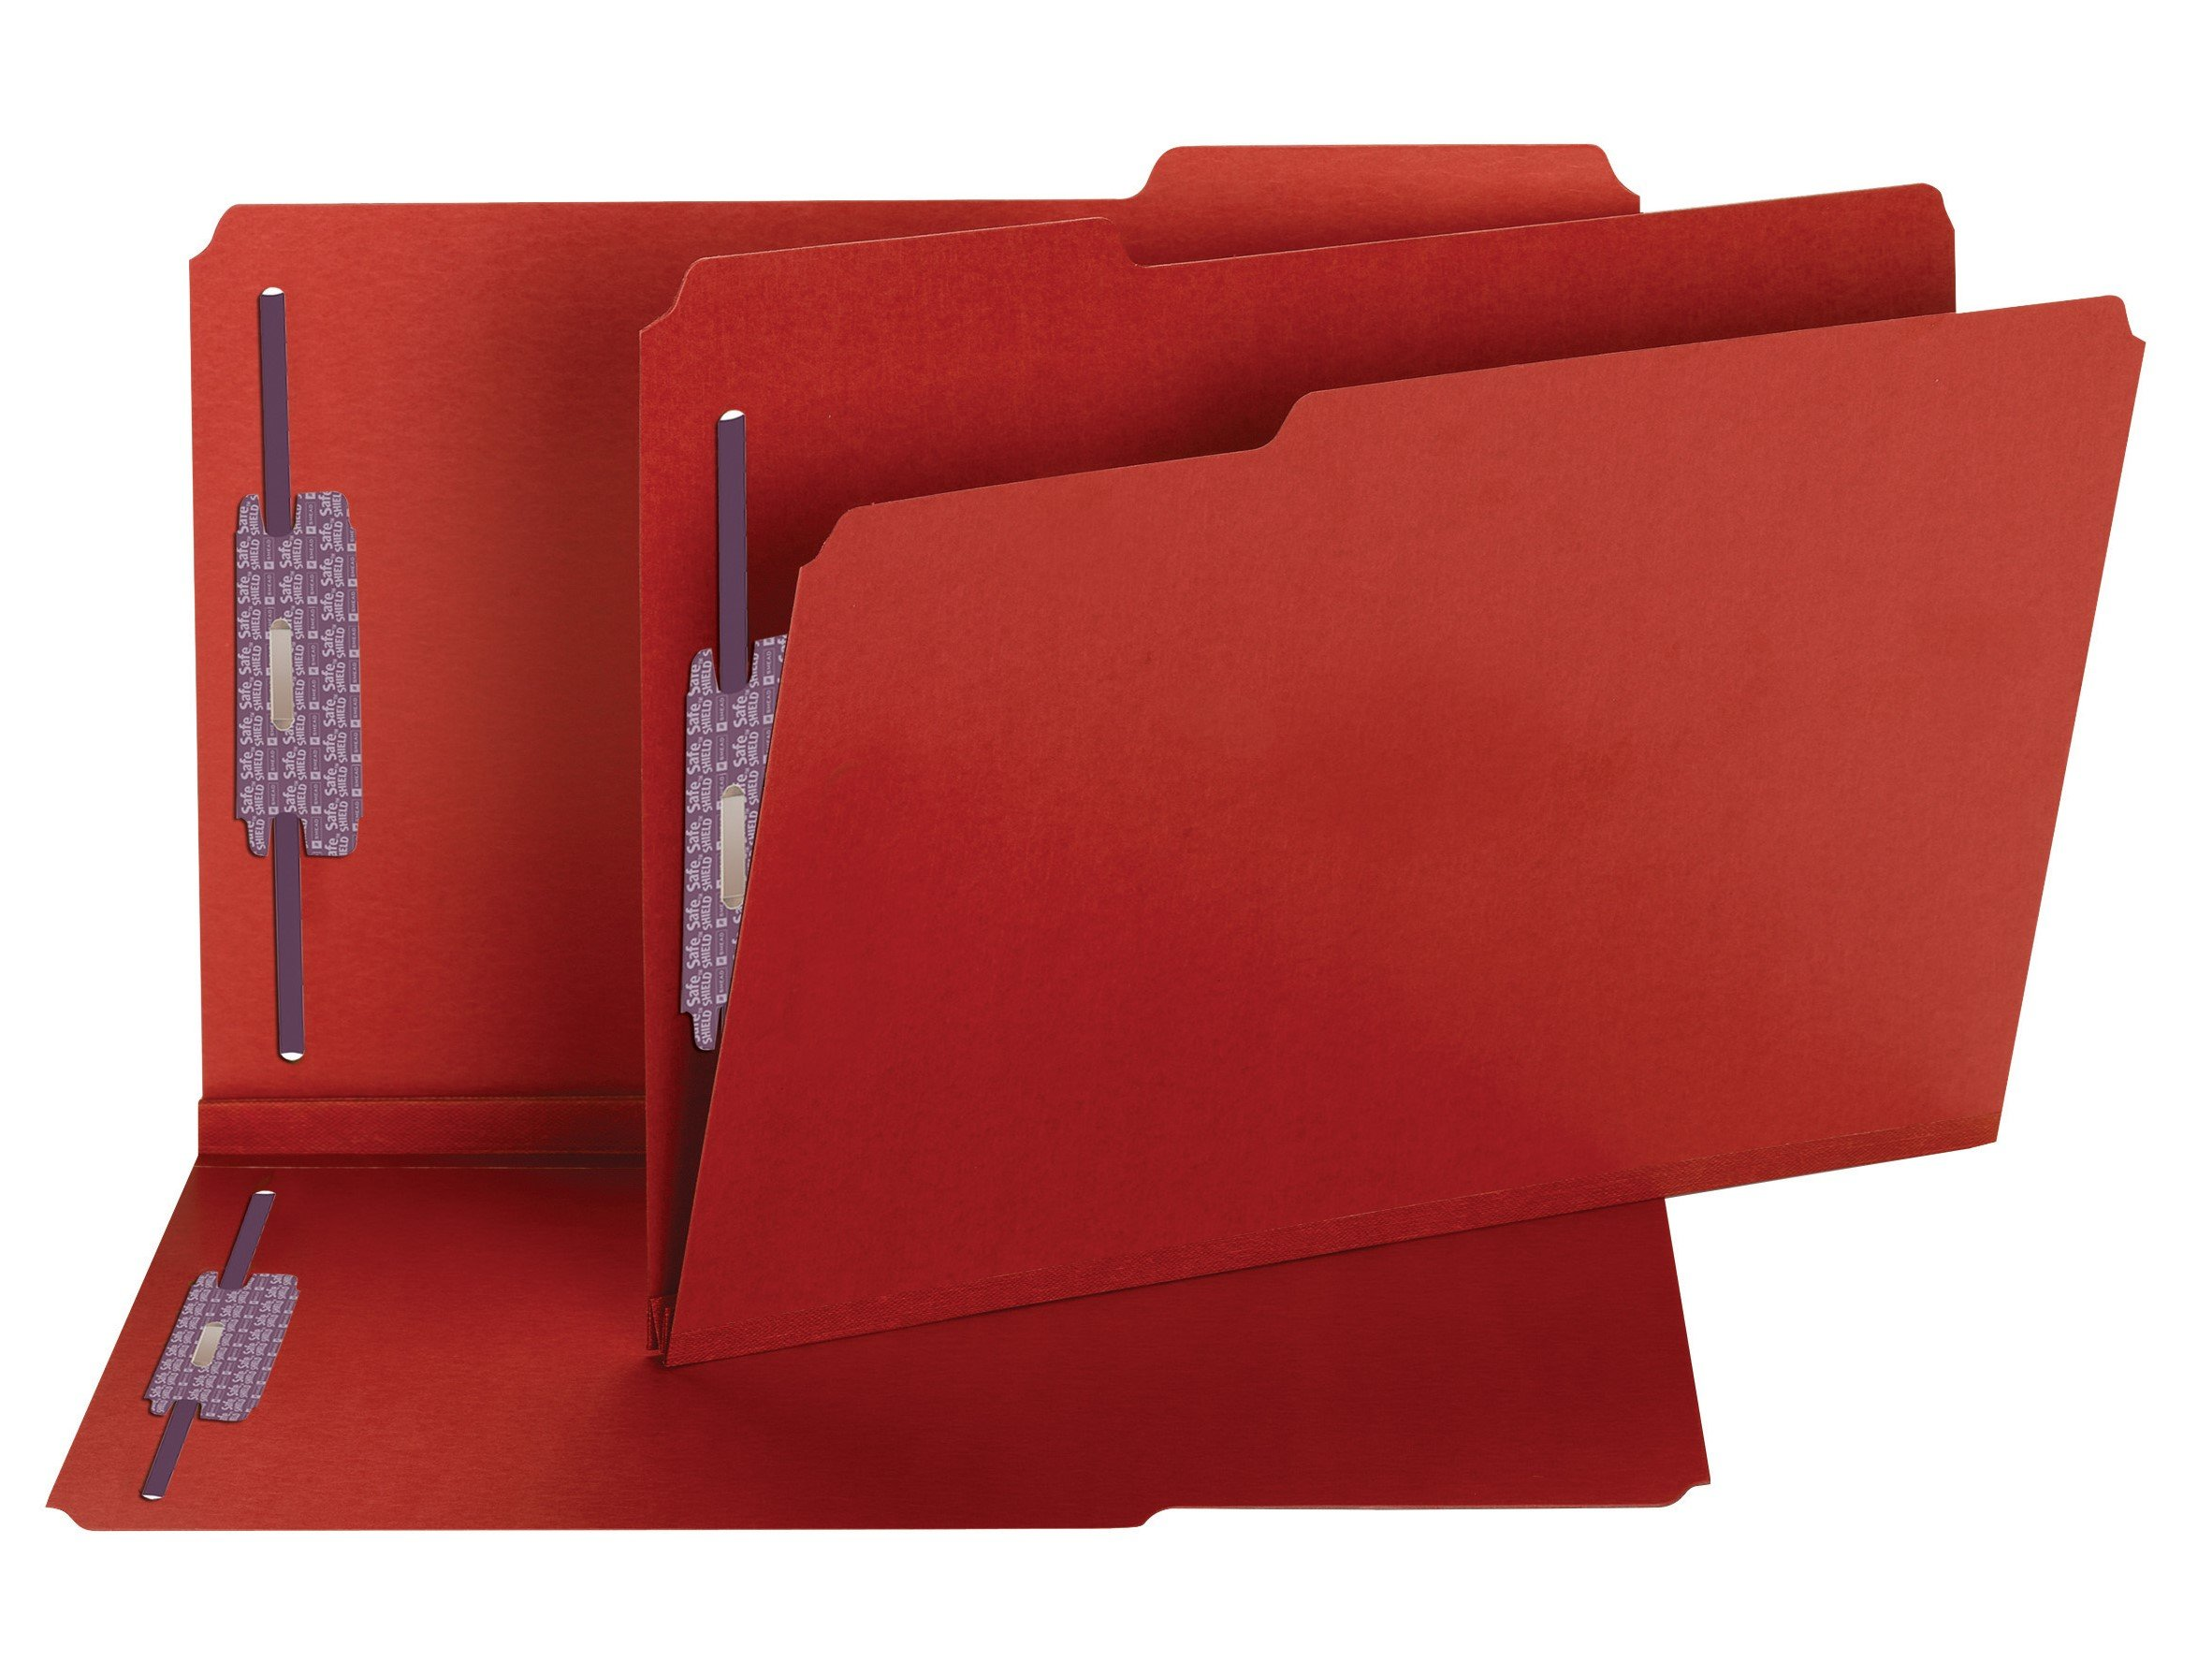 Smead Pressboard Fastener File Folder with SafeSHIELD Fasteners, 2 Fasteners, 1/3-Cut Tab, 2'' Expansion, Legal Size, Bright Red, 25 per Box (19936) by Smead